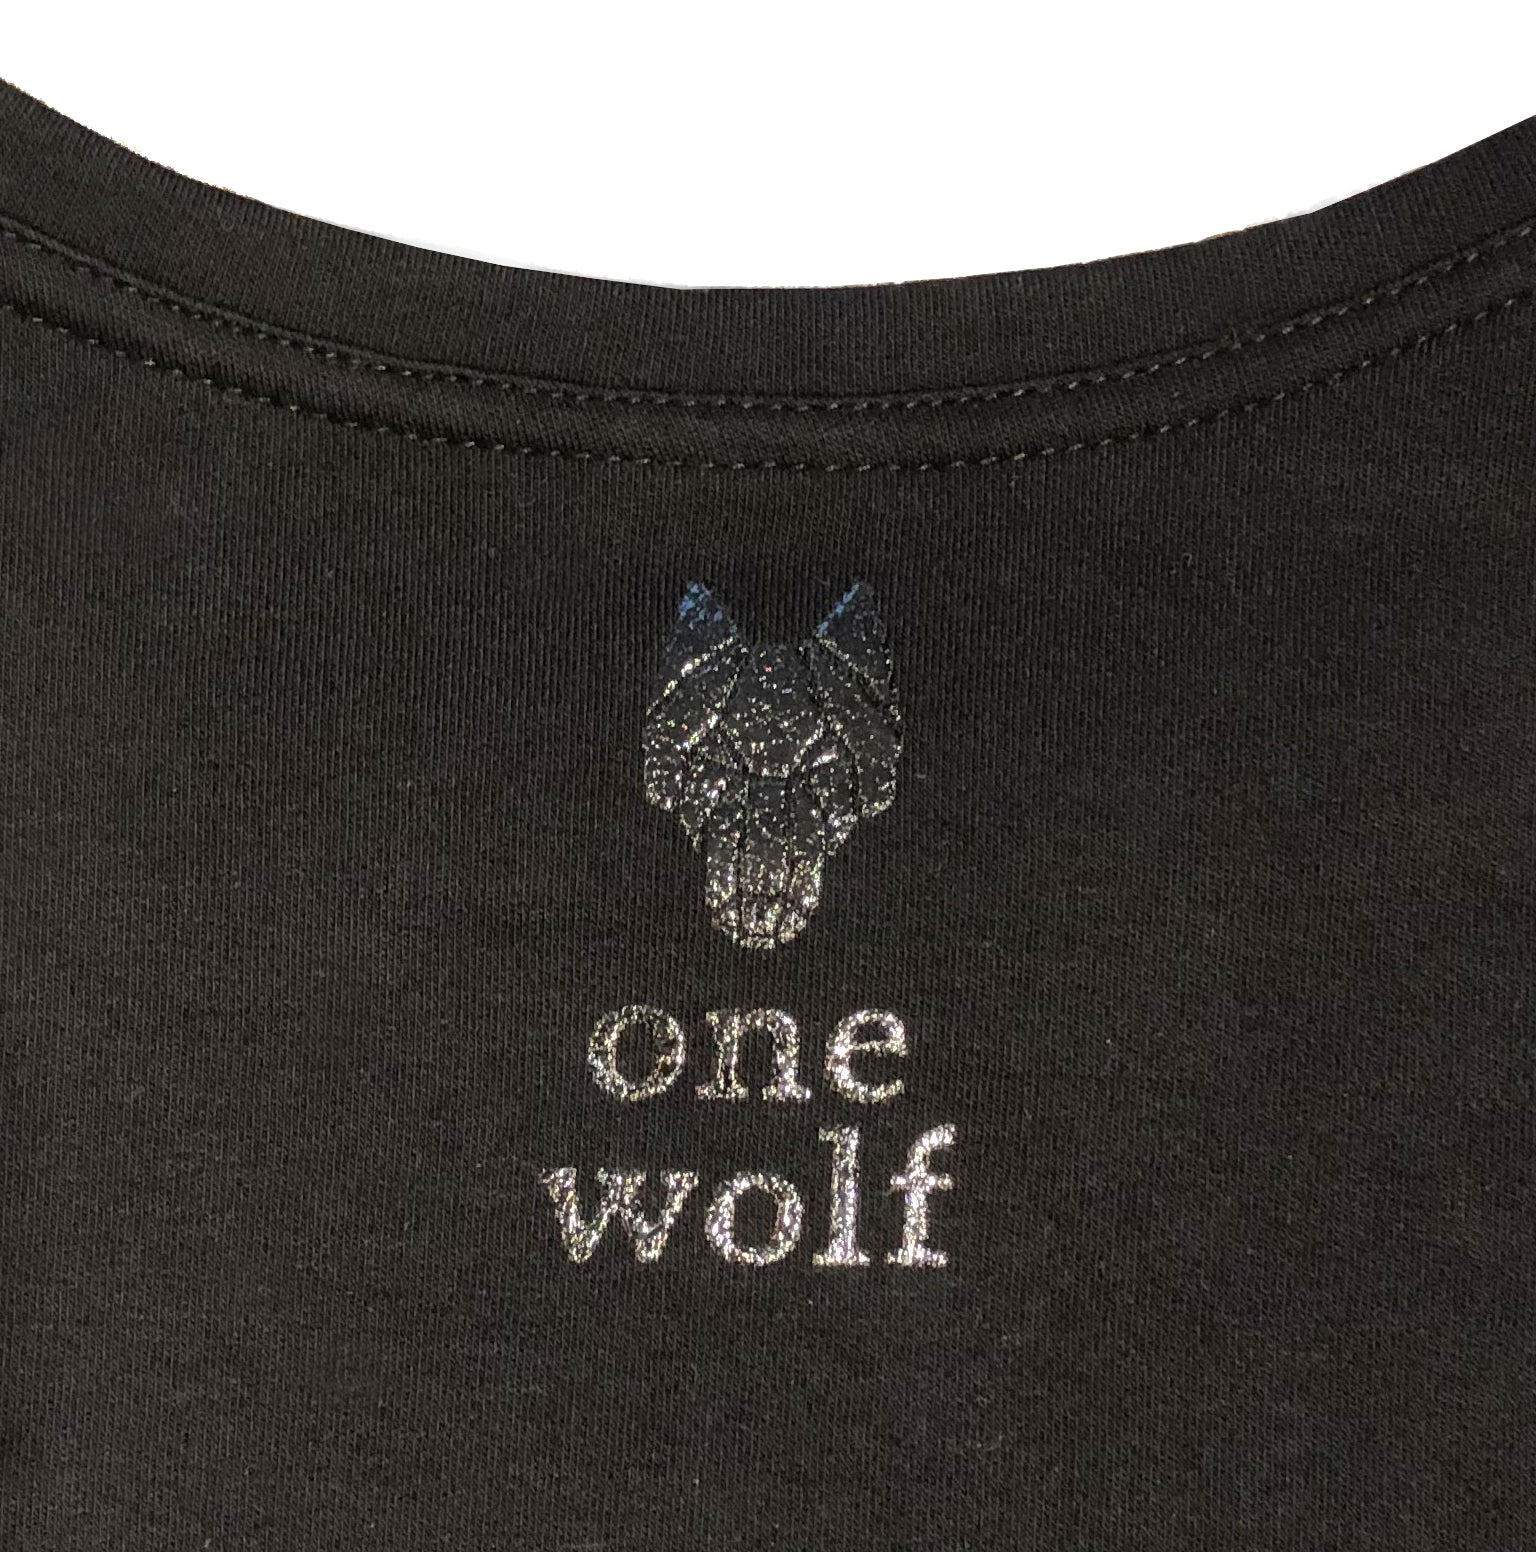 One Wolf long sleeves LOGO T-Shirt black/black gloss